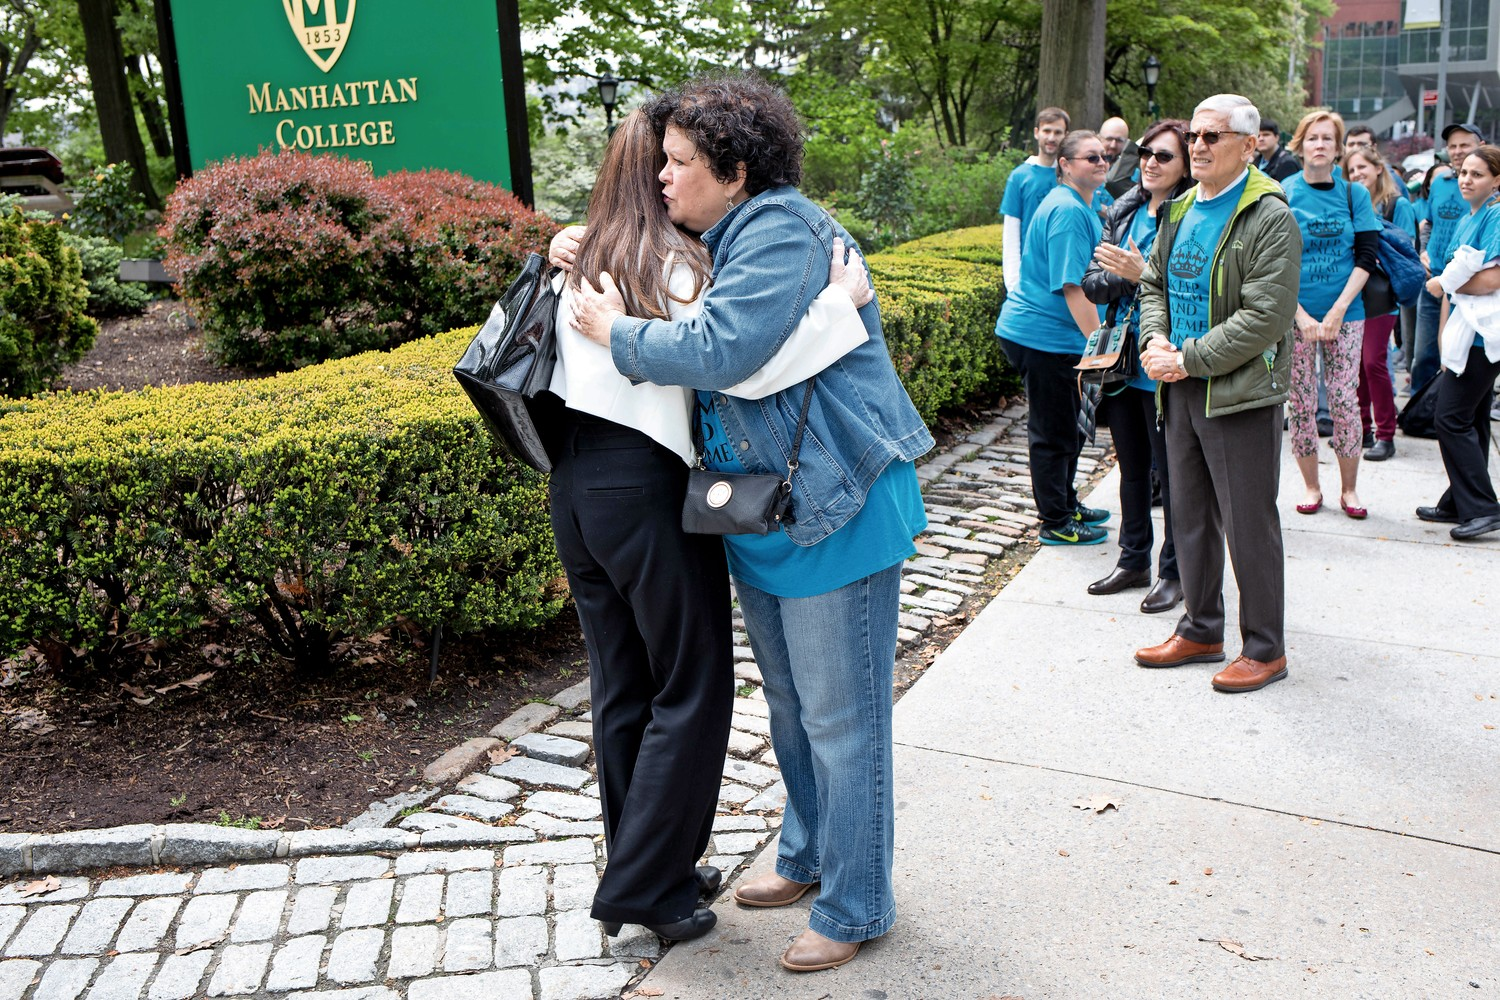 Ann Marie Flynn, left, hugs her sister-in-law, Kerry Brady, outside Manhattan College. A professor of chemical engineering, Flynn attended her preliminary termination hearing.